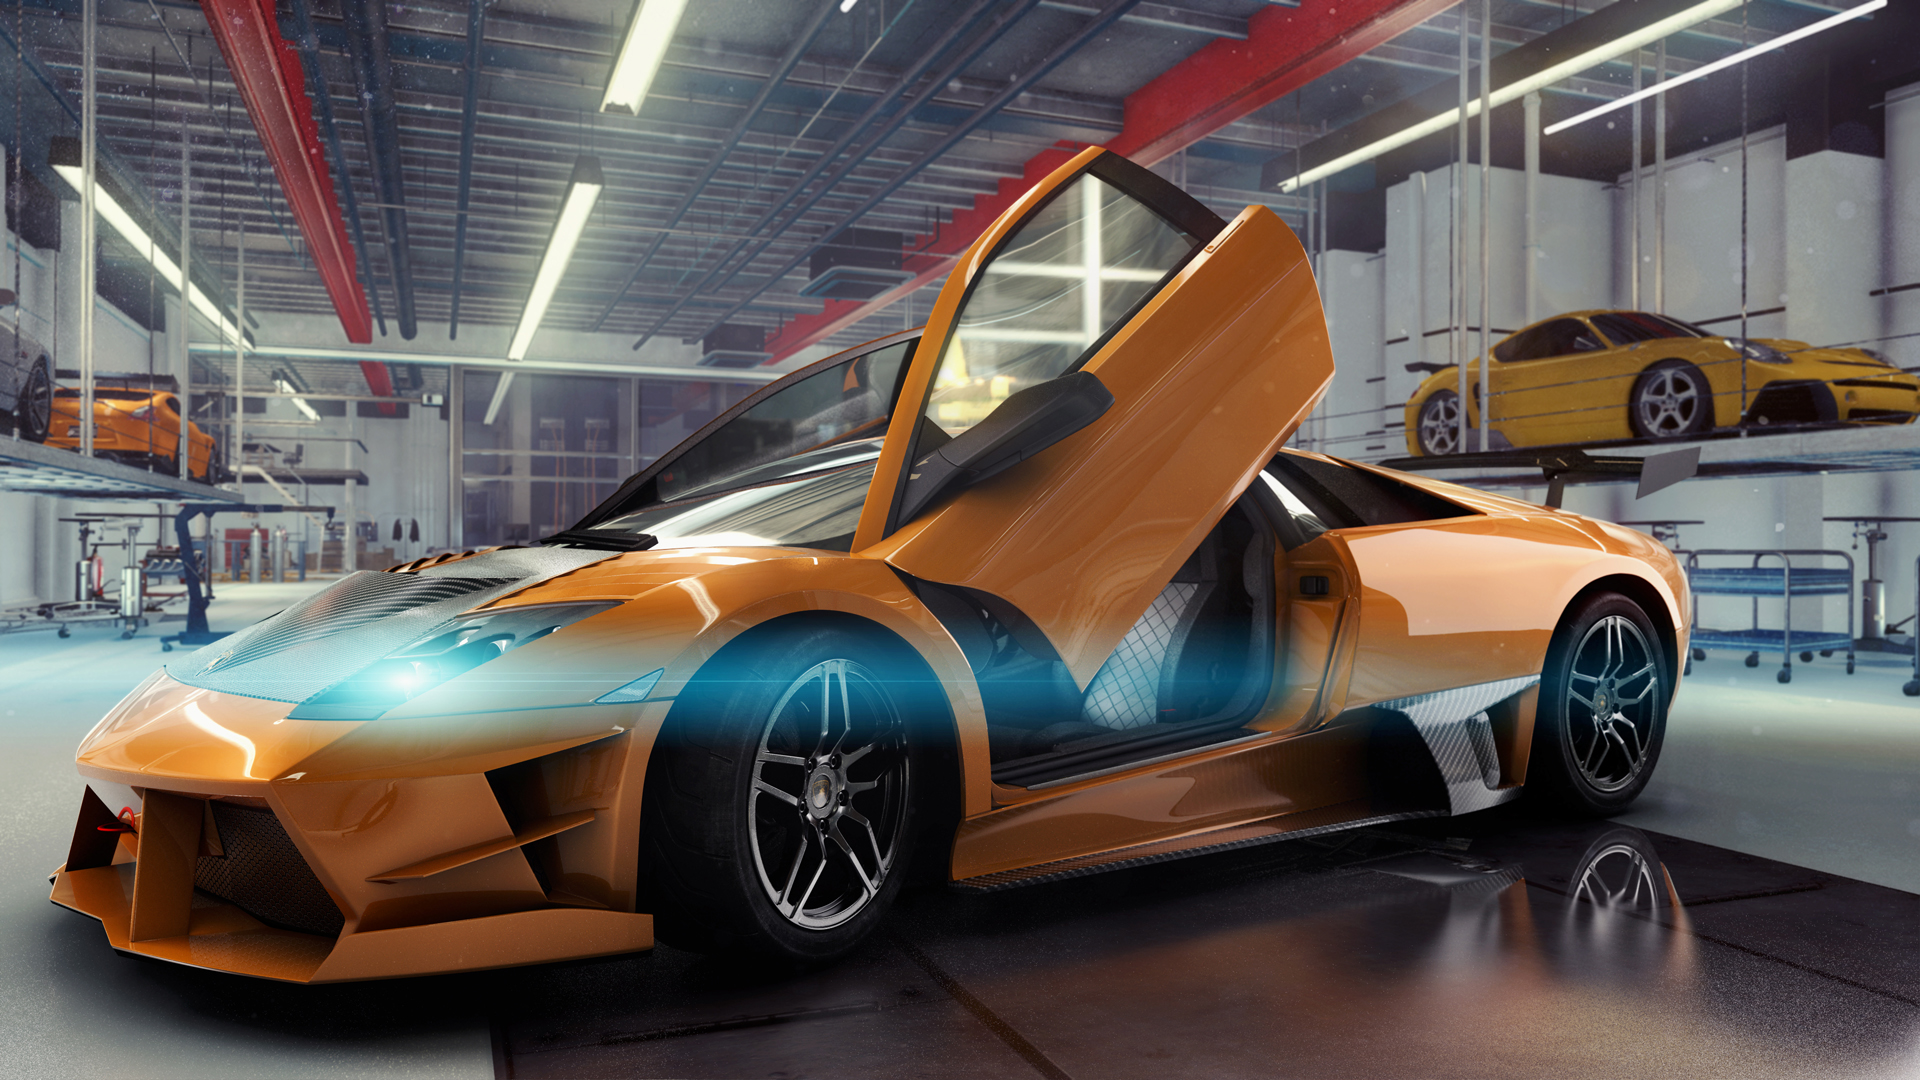 Lamborghini Official Cars And Tuning Kits The Crew